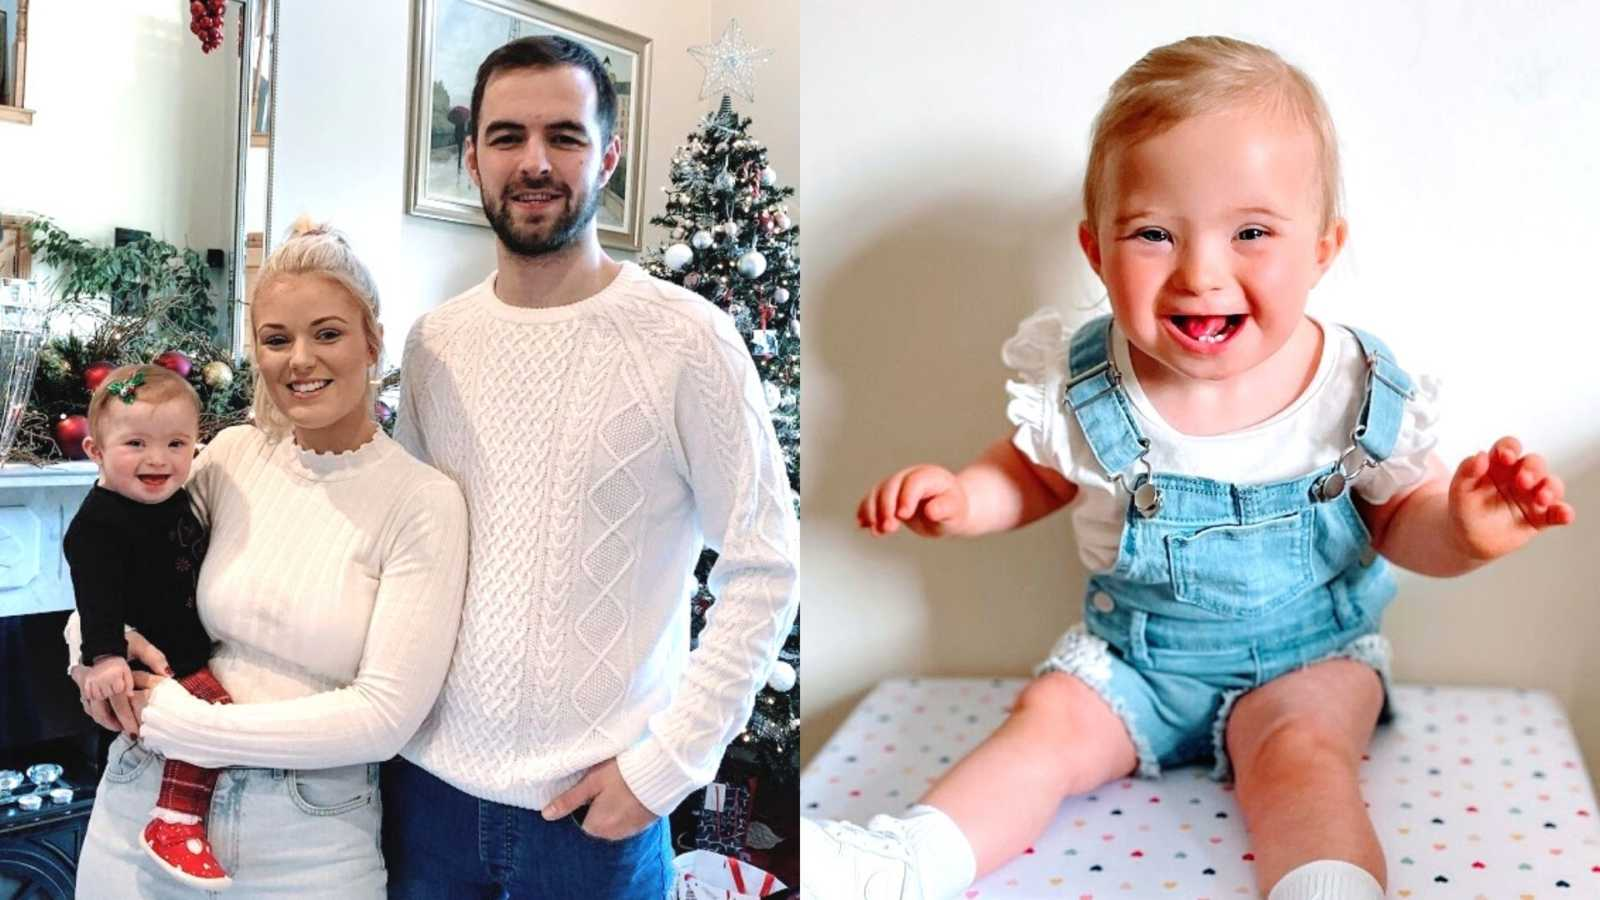 Parents wearing white hold their baby girl and a little girl with down syndrome wearing overalls